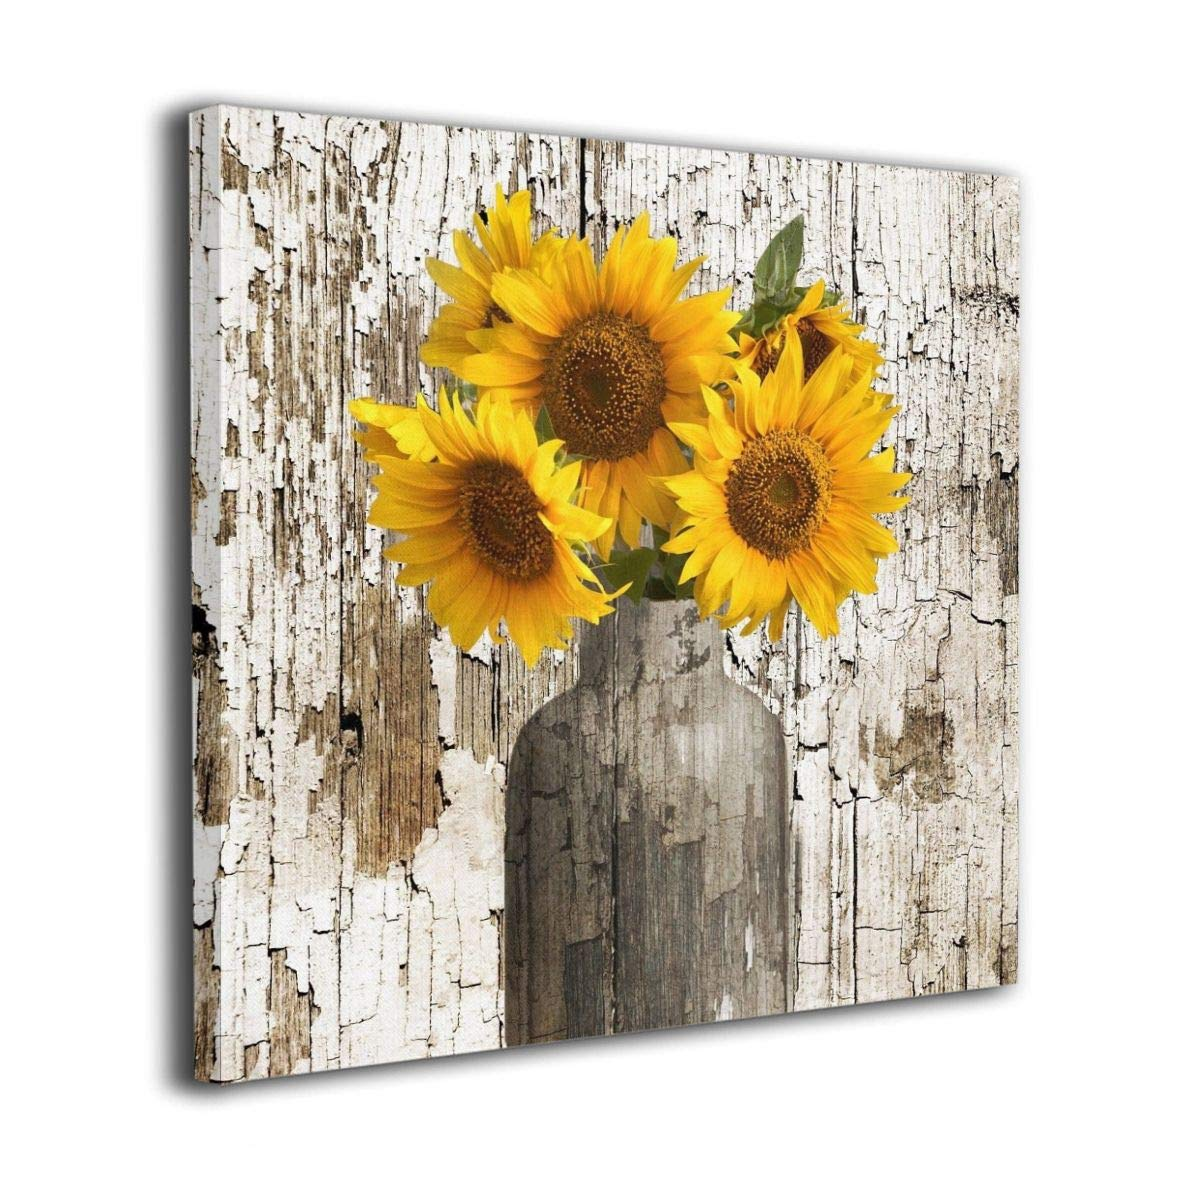 "Rustic Floral Country Farmhouse Sunflower Contemporary Canvas Artwork Prints Wall Art Decor For Home Living Room Bedroom Decoration Office Wall Decor Framed Ready To Hang 20""x20"""